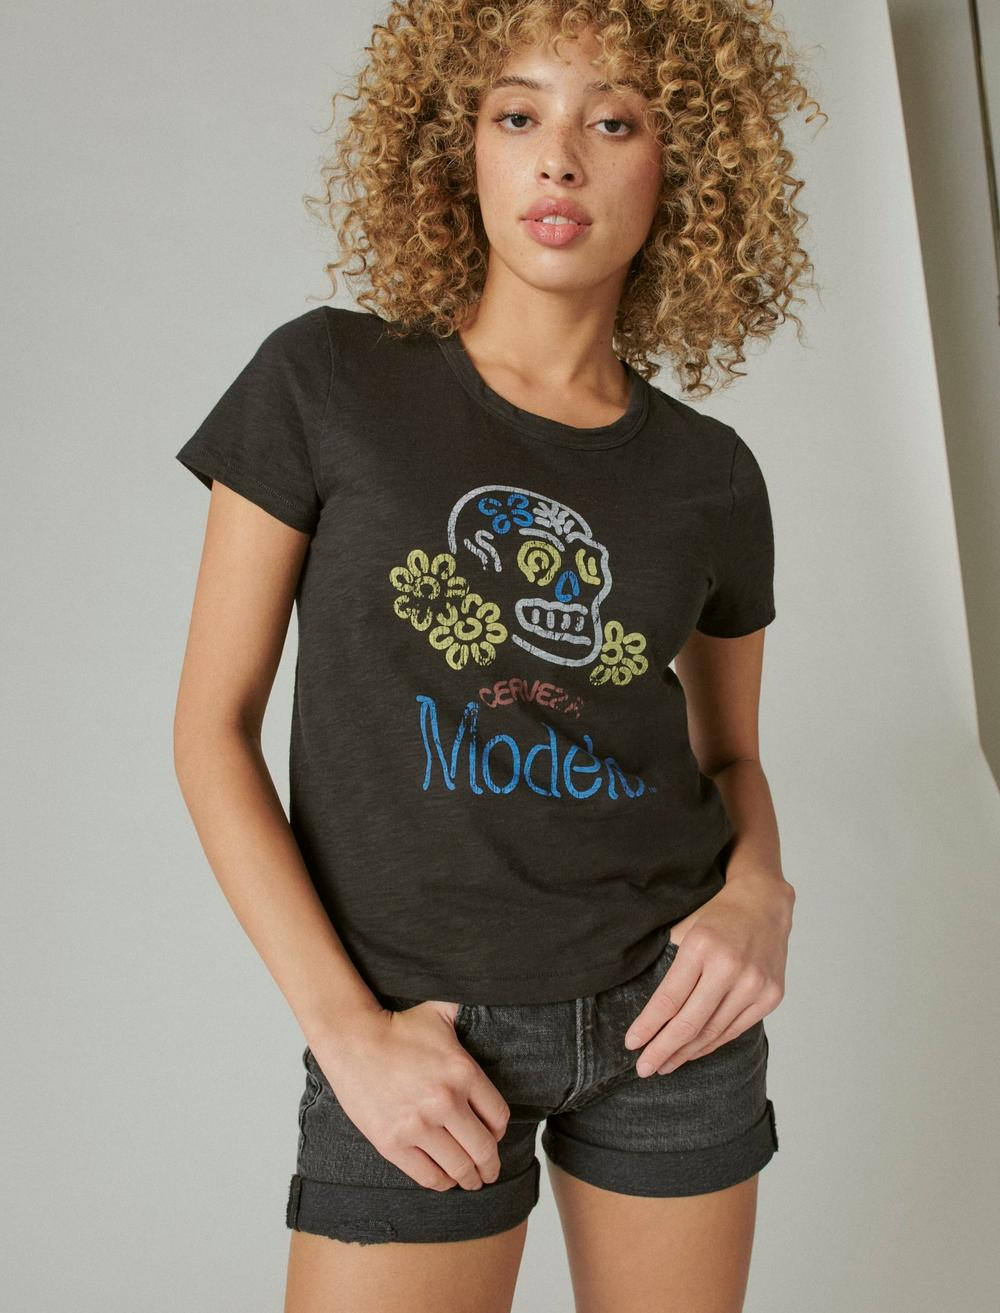 MODELO DAY OF THE DEAD CLASSIC GRAPHIC CREW, image 1